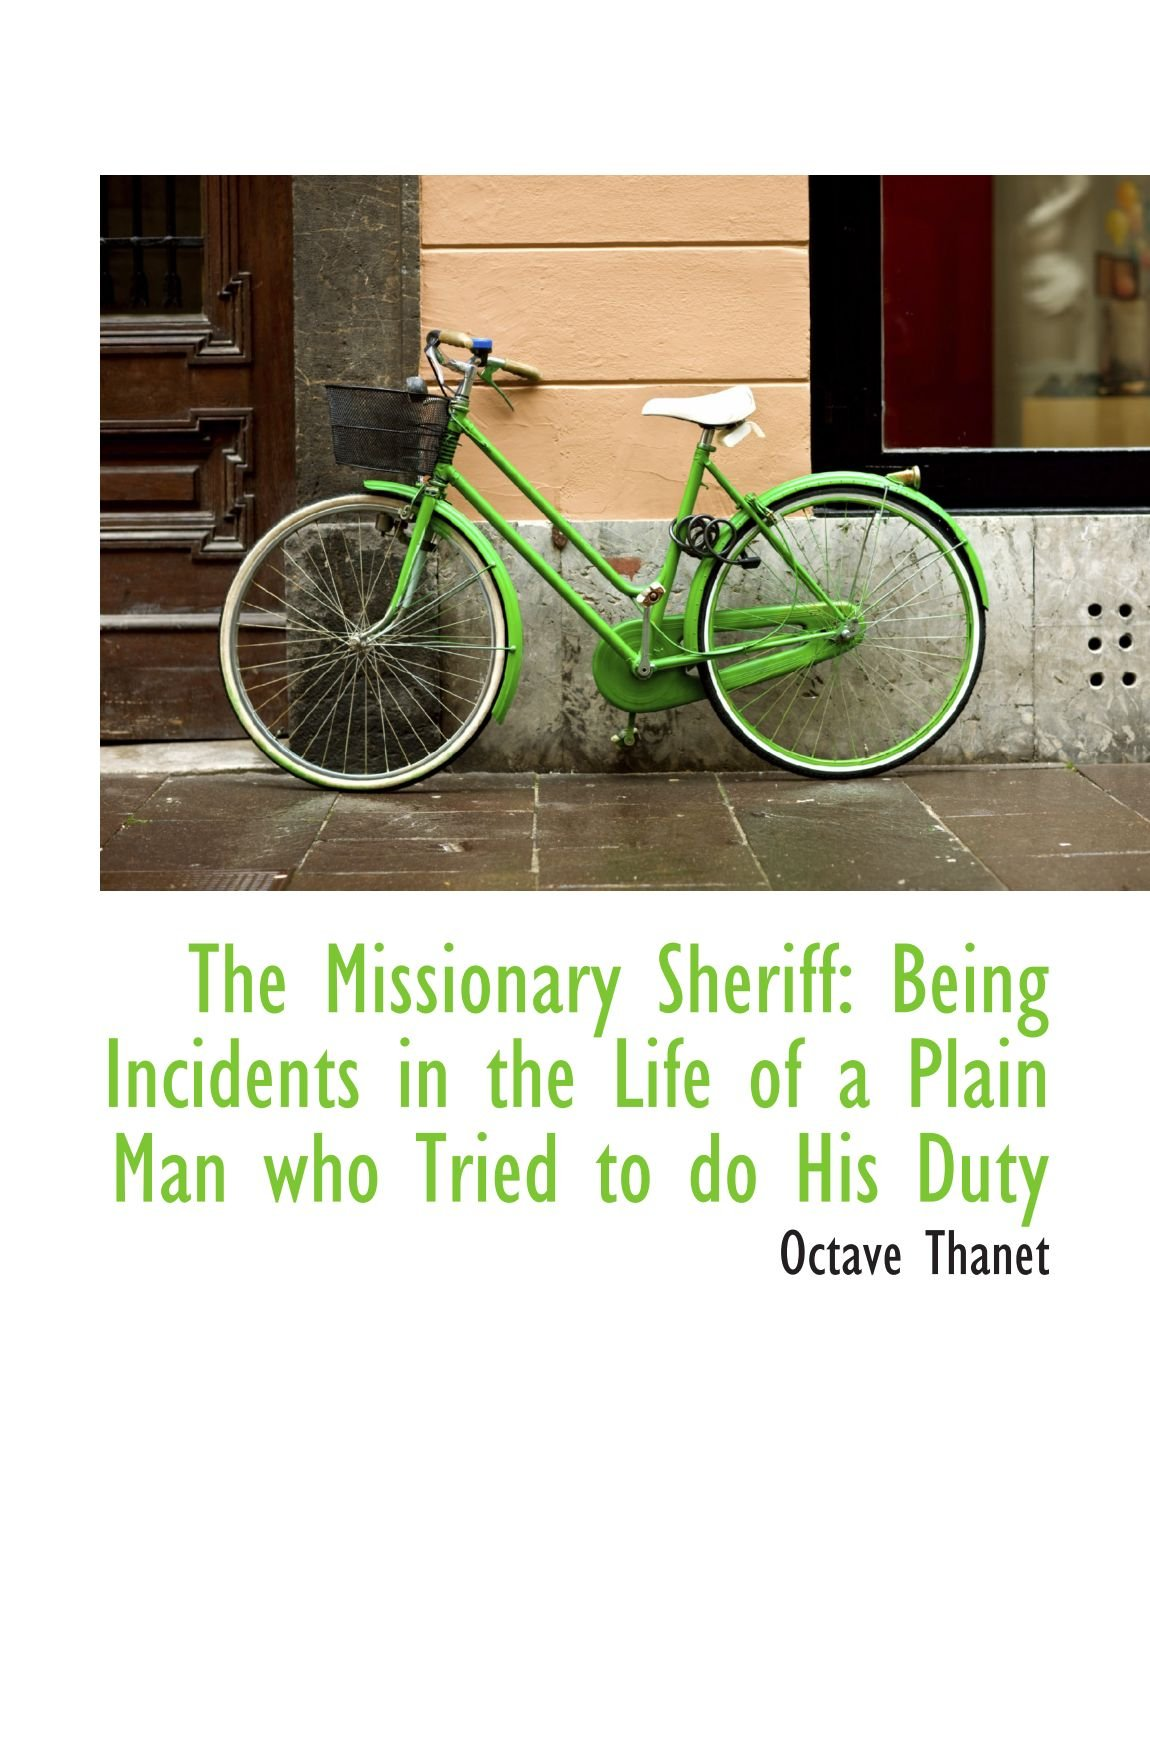 Download The Missionary Sheriff: Being Incidents in the Life of a Plain Man who Tried to do His Duty PDF